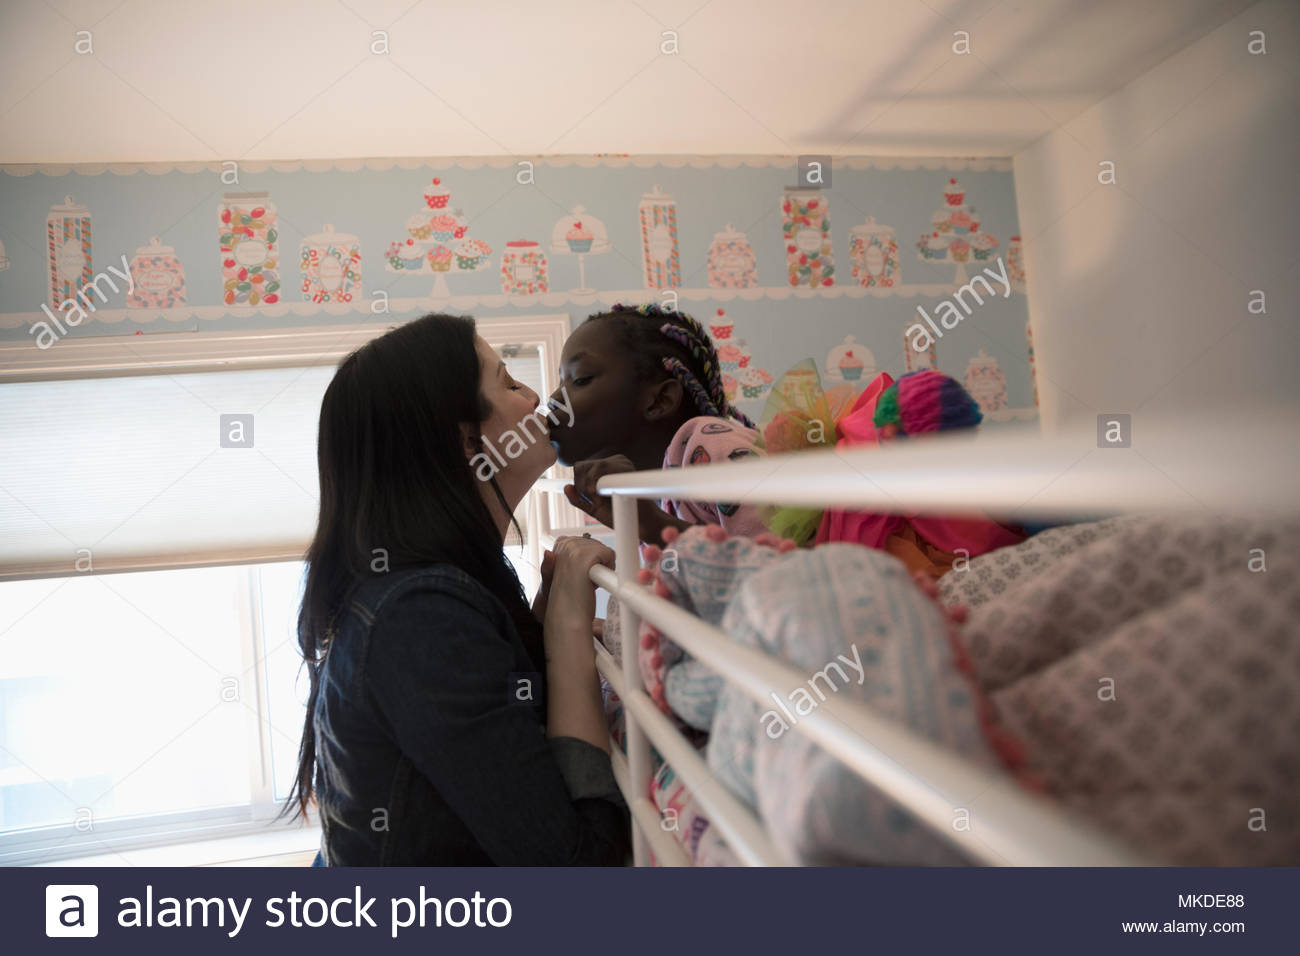 Affectionate mother kissing daughter waking in bunk bed - Stock Image